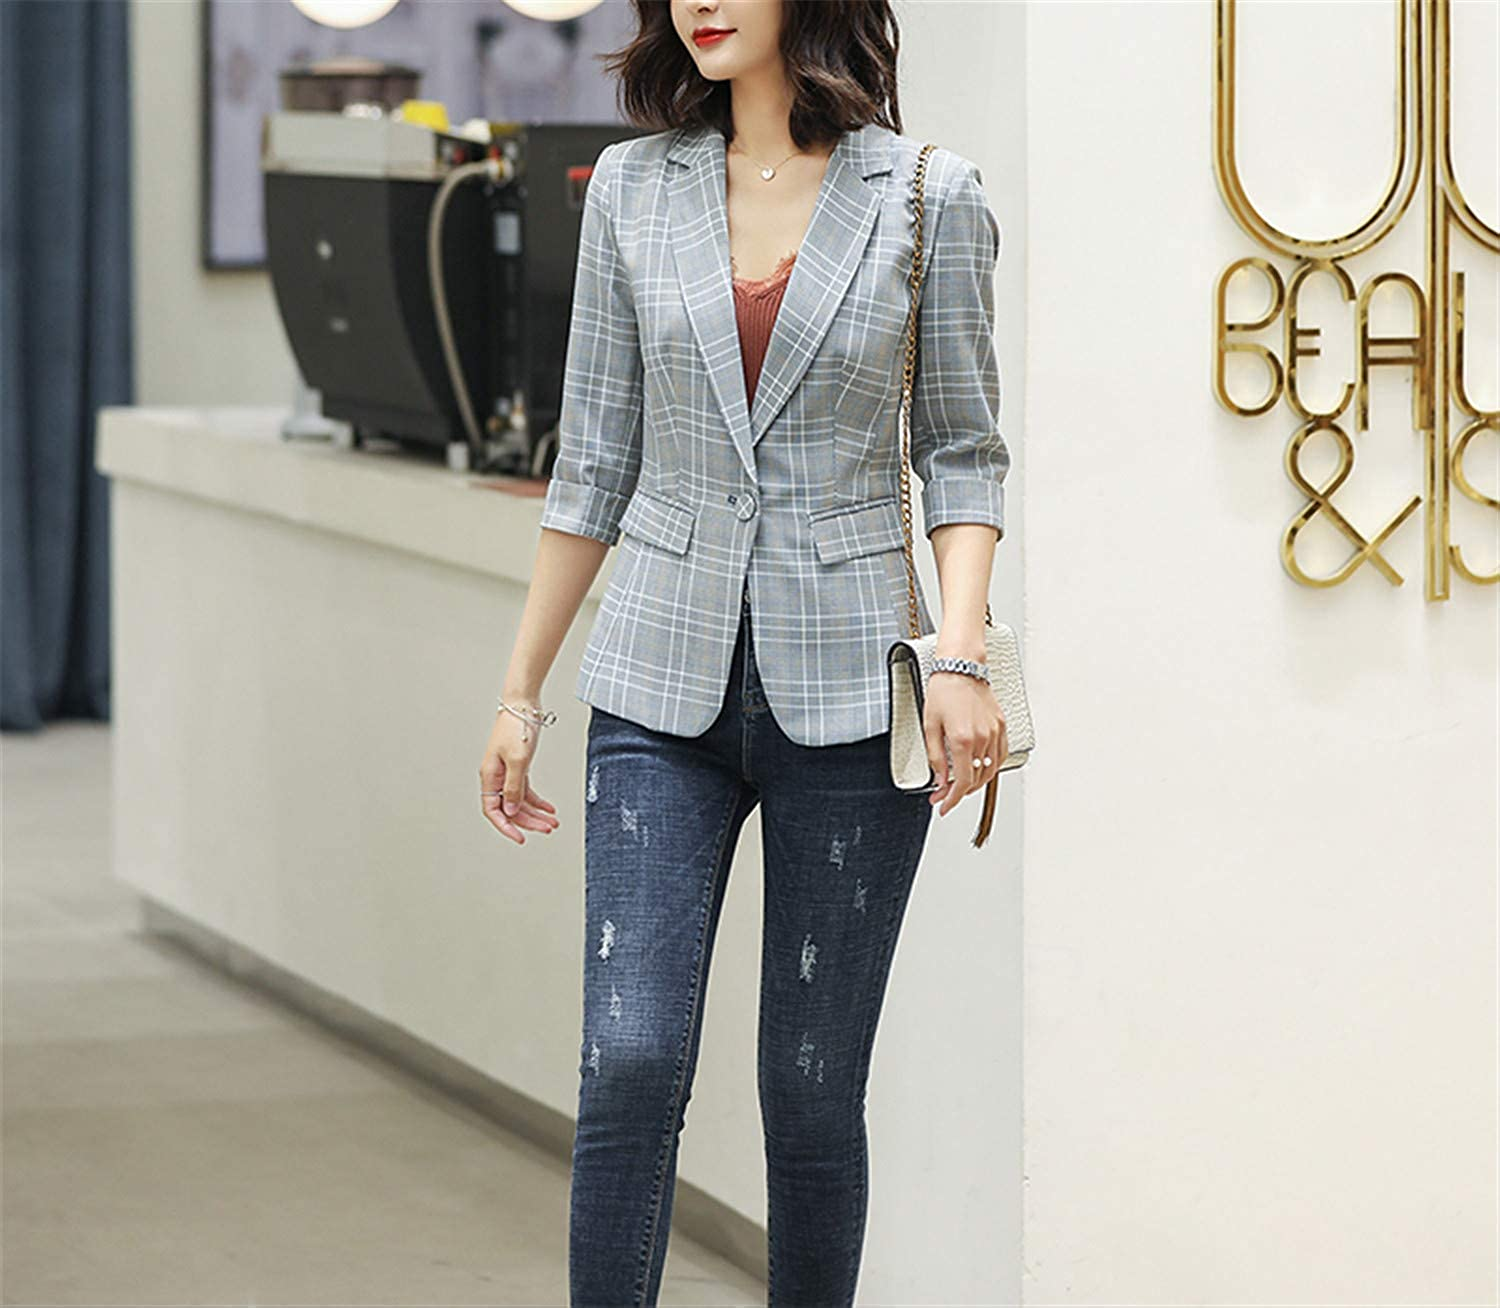 Plaid Jacket for Women Summer Wear Casual Style Breathable Coat Half Sleeve Blazer Breathable Tops Outwear